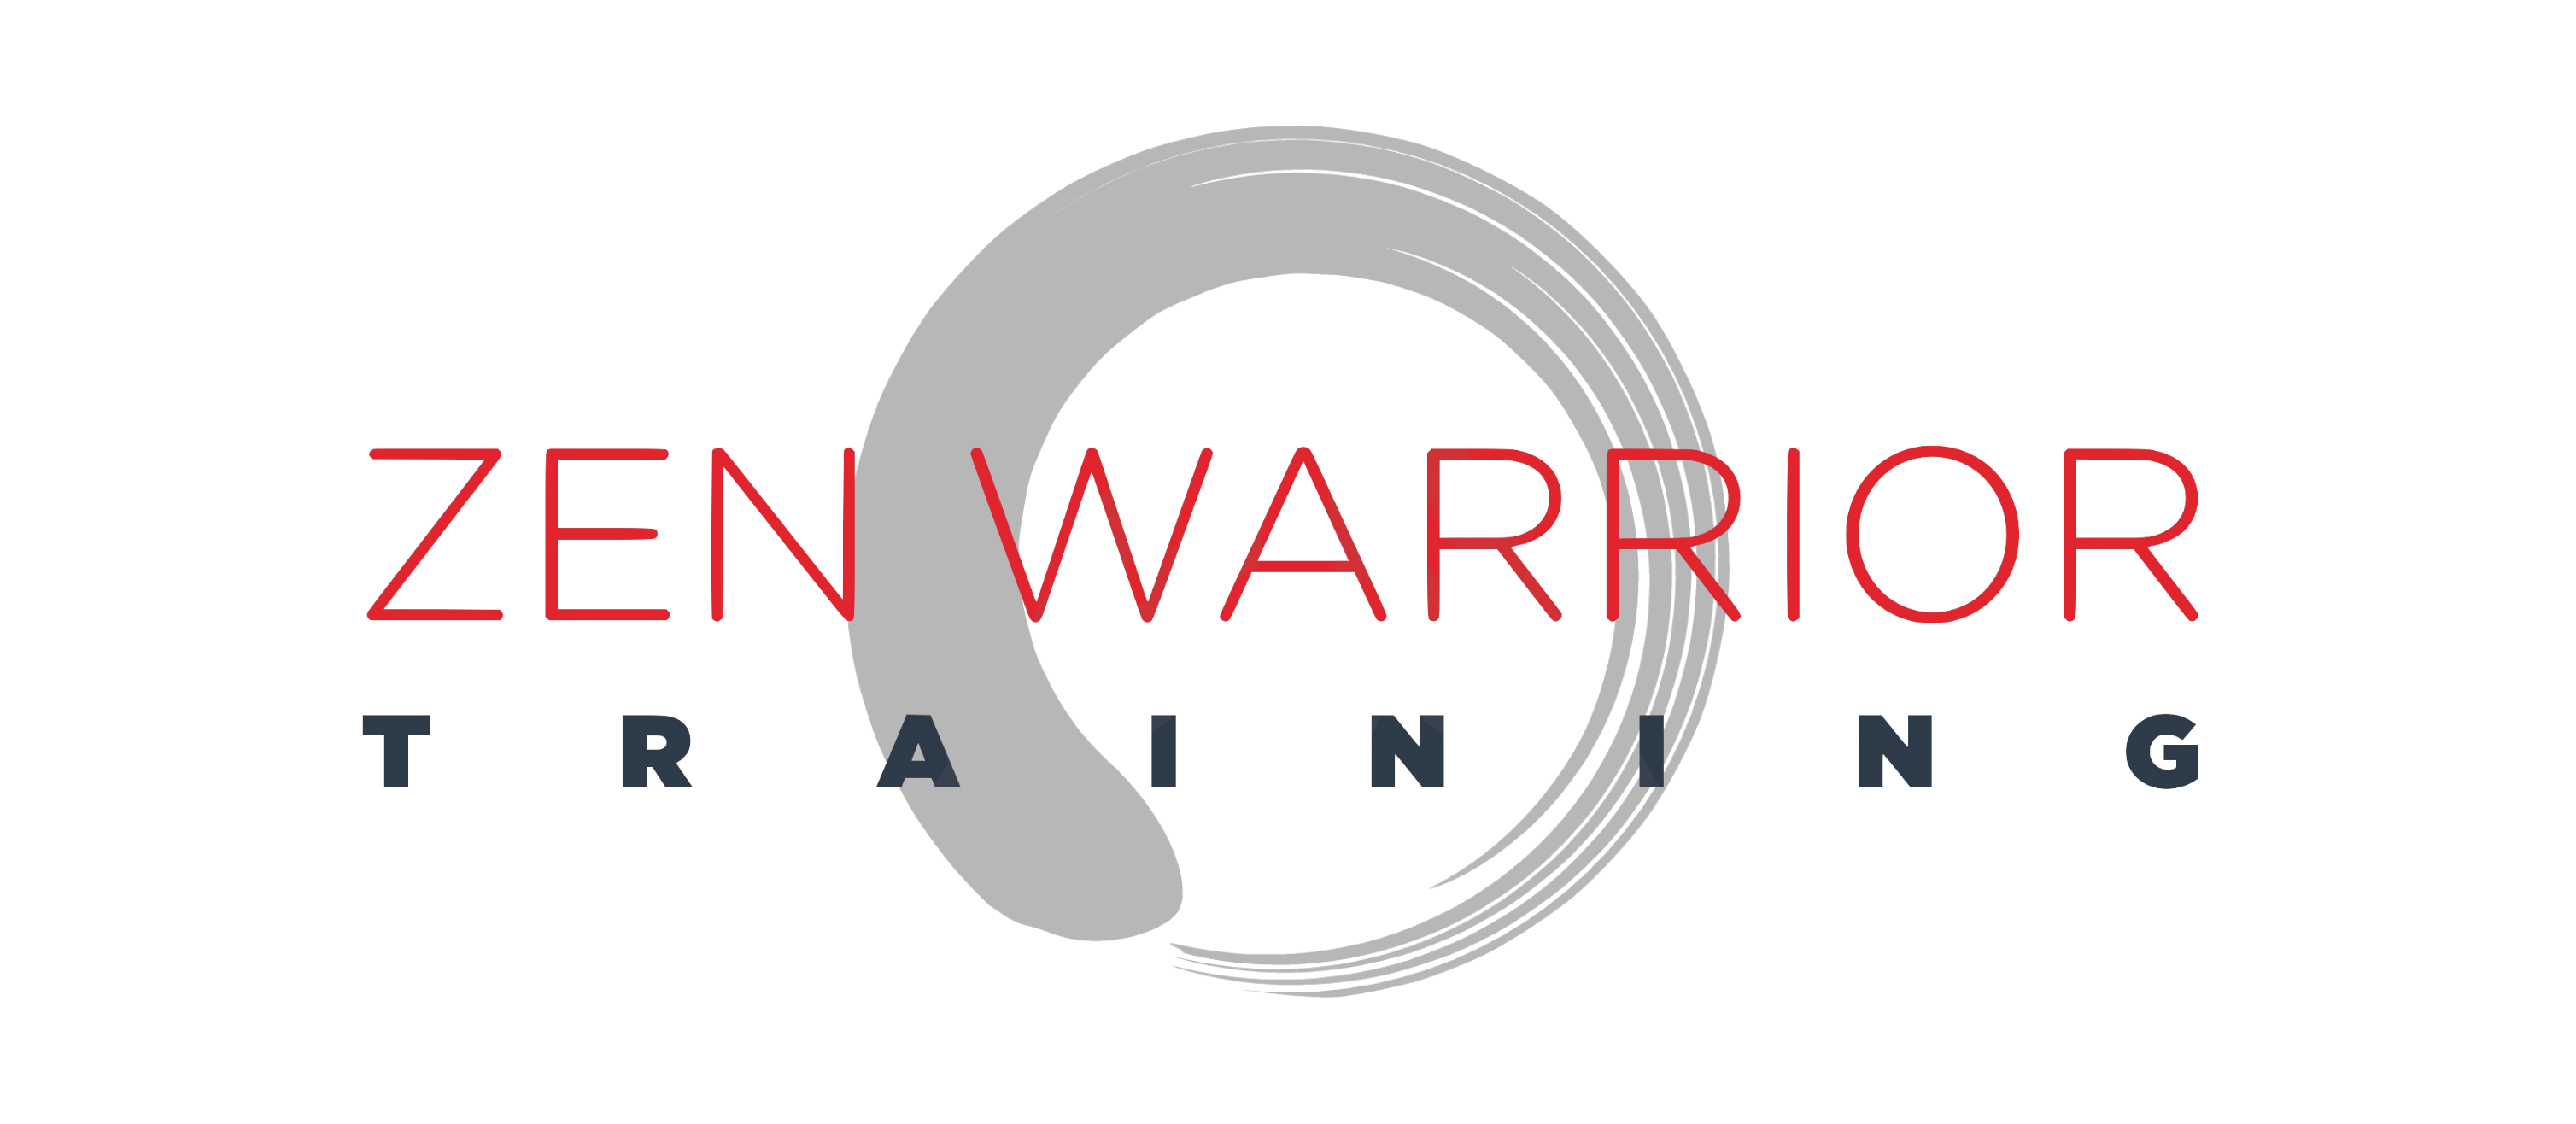 ZEN WARRIOR TRAINING